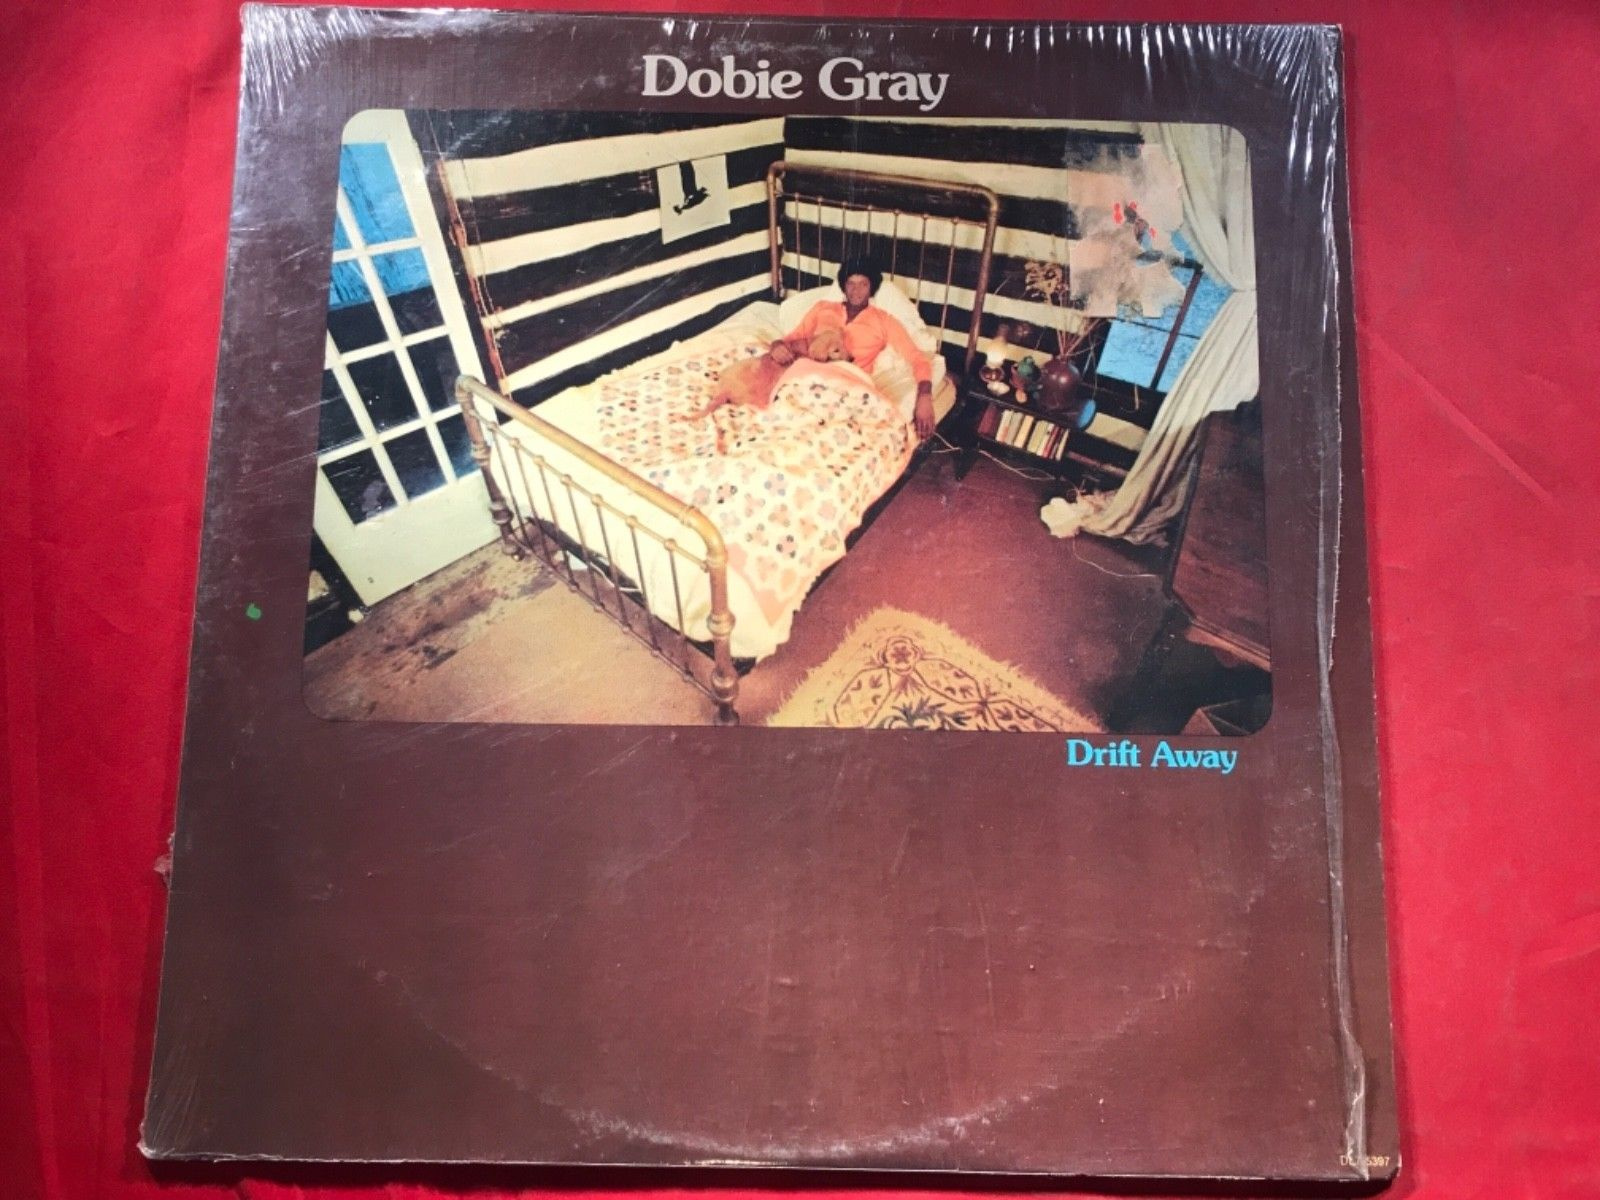 A1-16 DOBIE GRAY Drift Away ......... 1973 ........ DL 75397